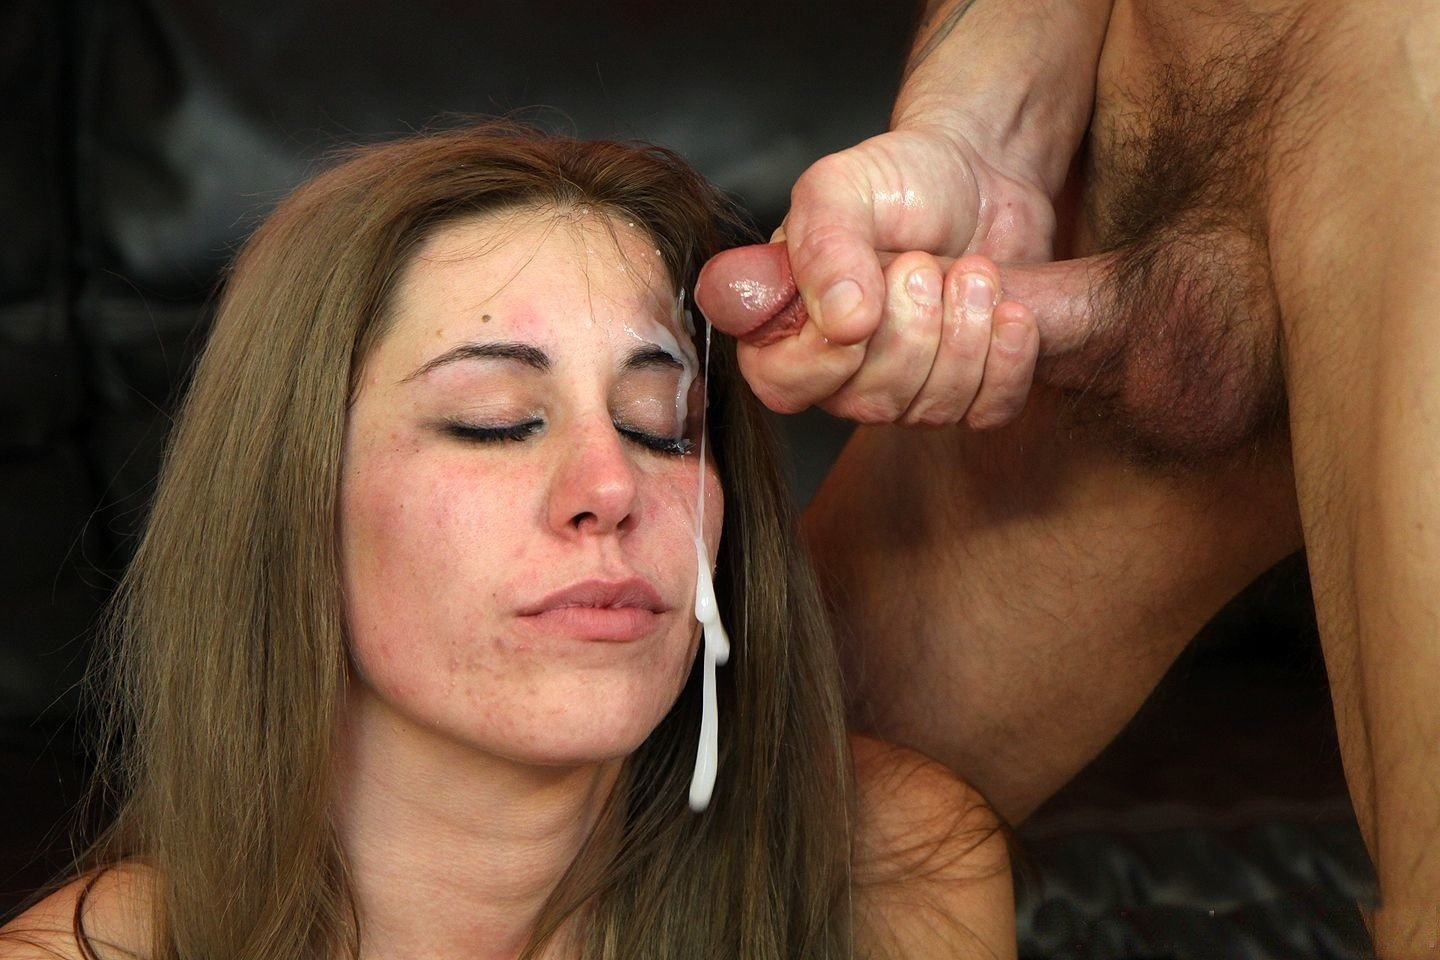 Grabbed her head to cum